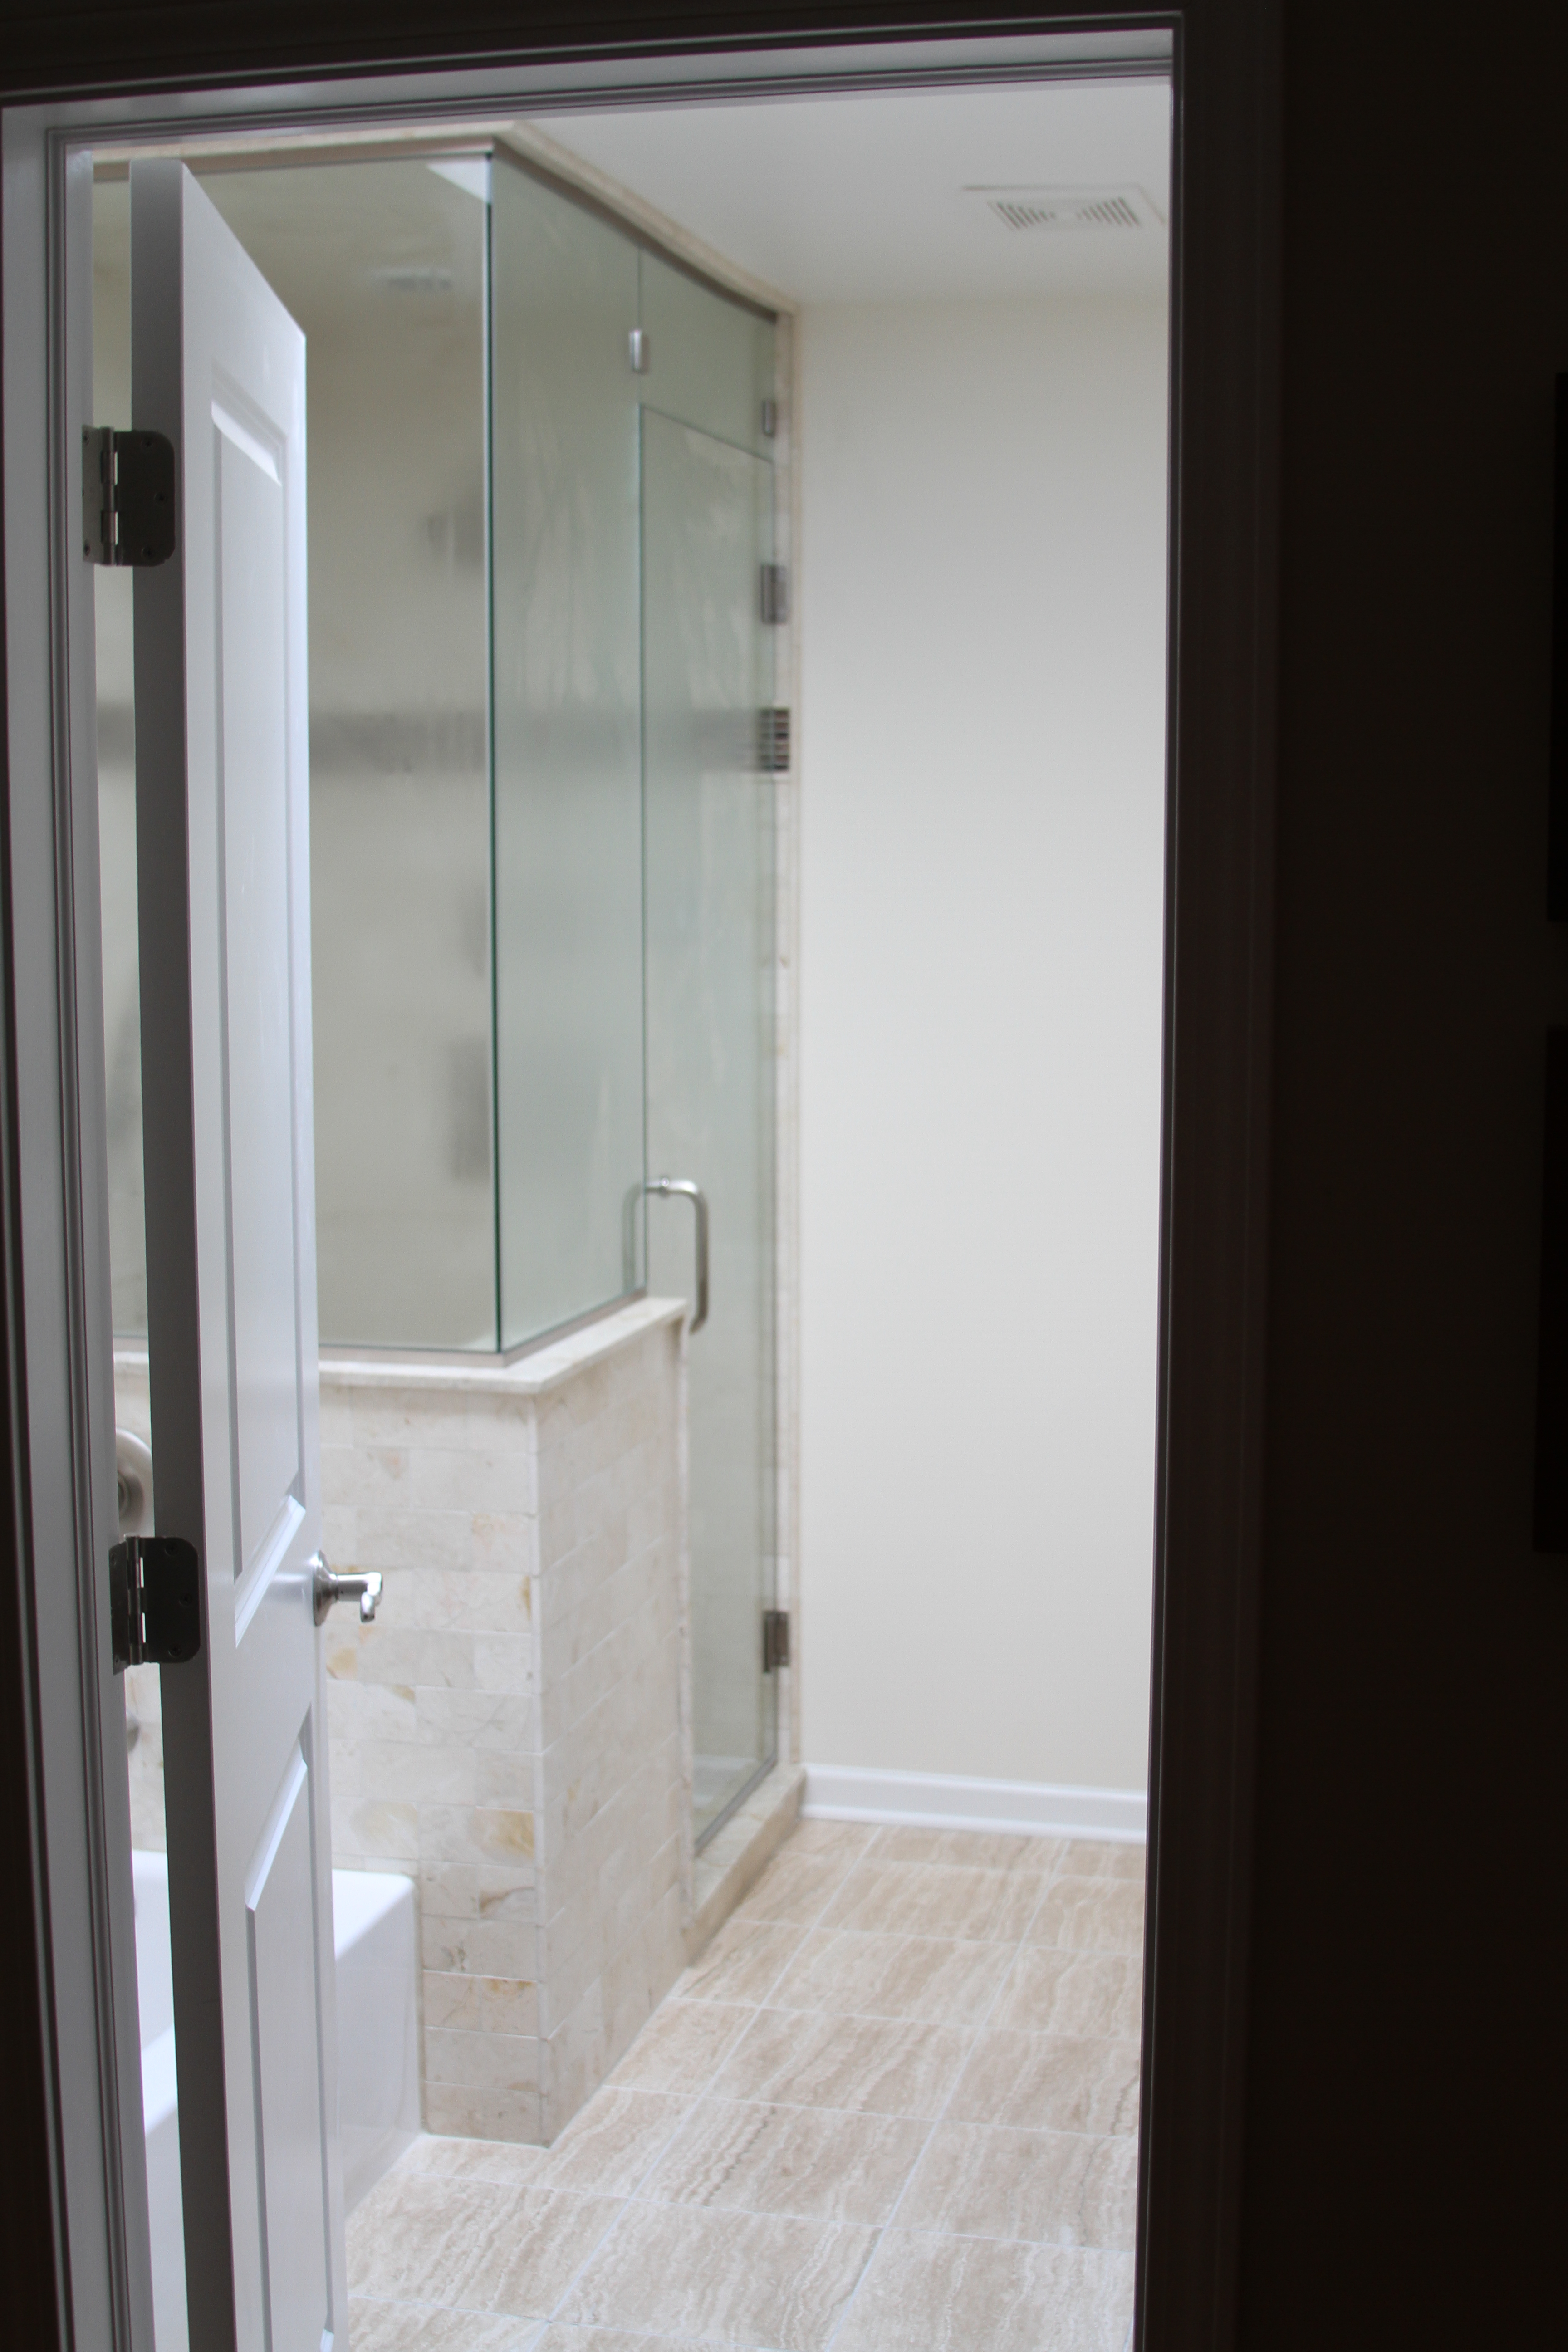 Bathroom design remodeling services chicago lakeview for Examples of bathroom remodels